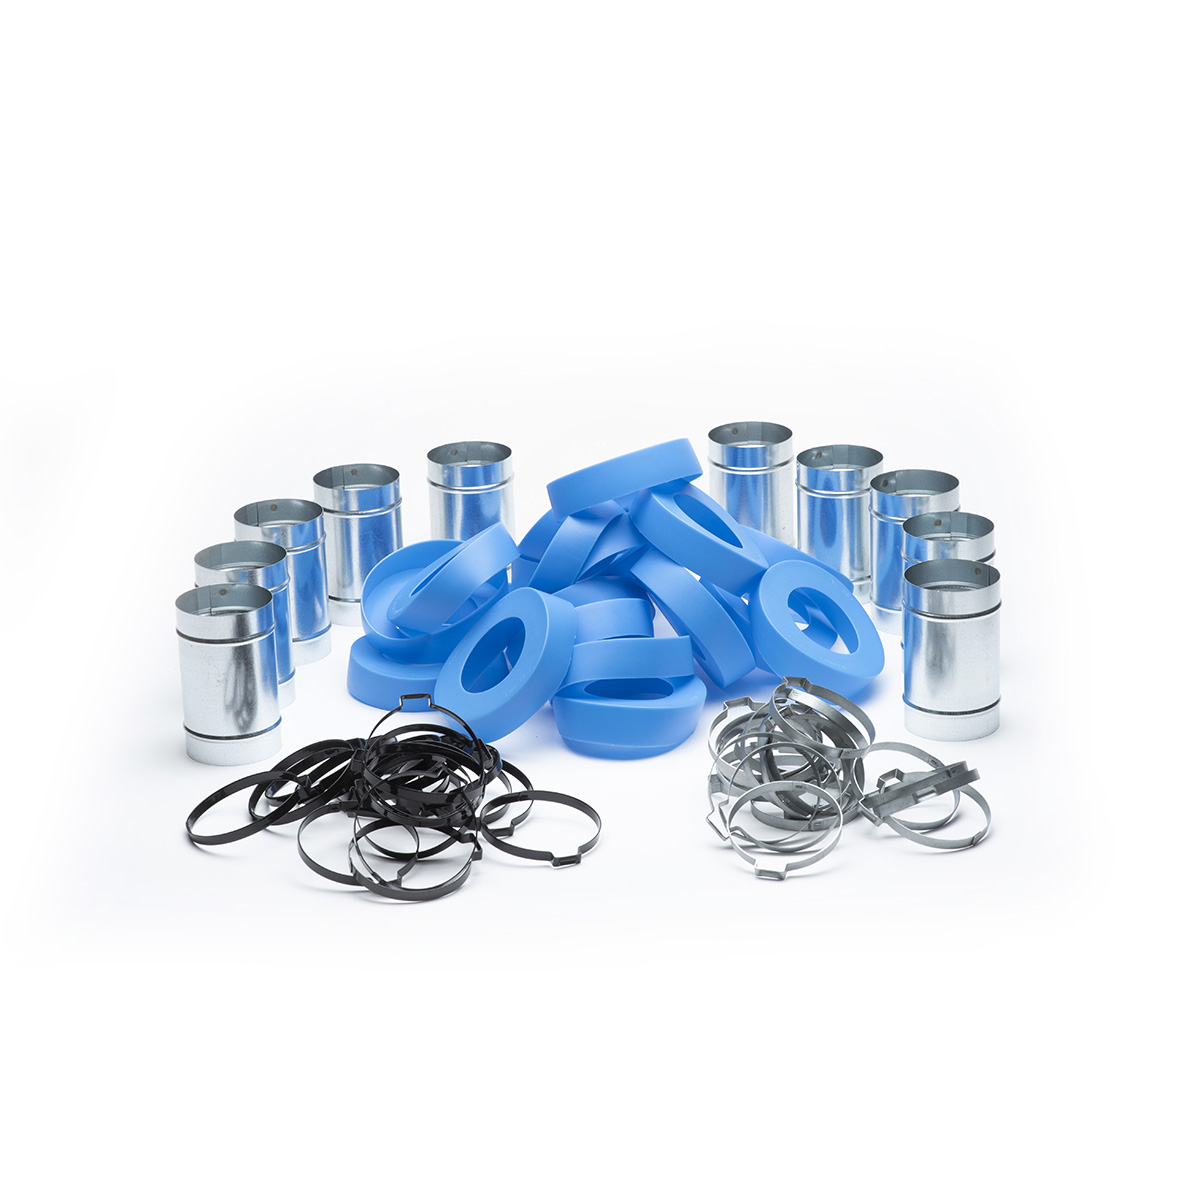 "Coupling Kit, 2.5"" Supply or SA Tubing, 10pk"